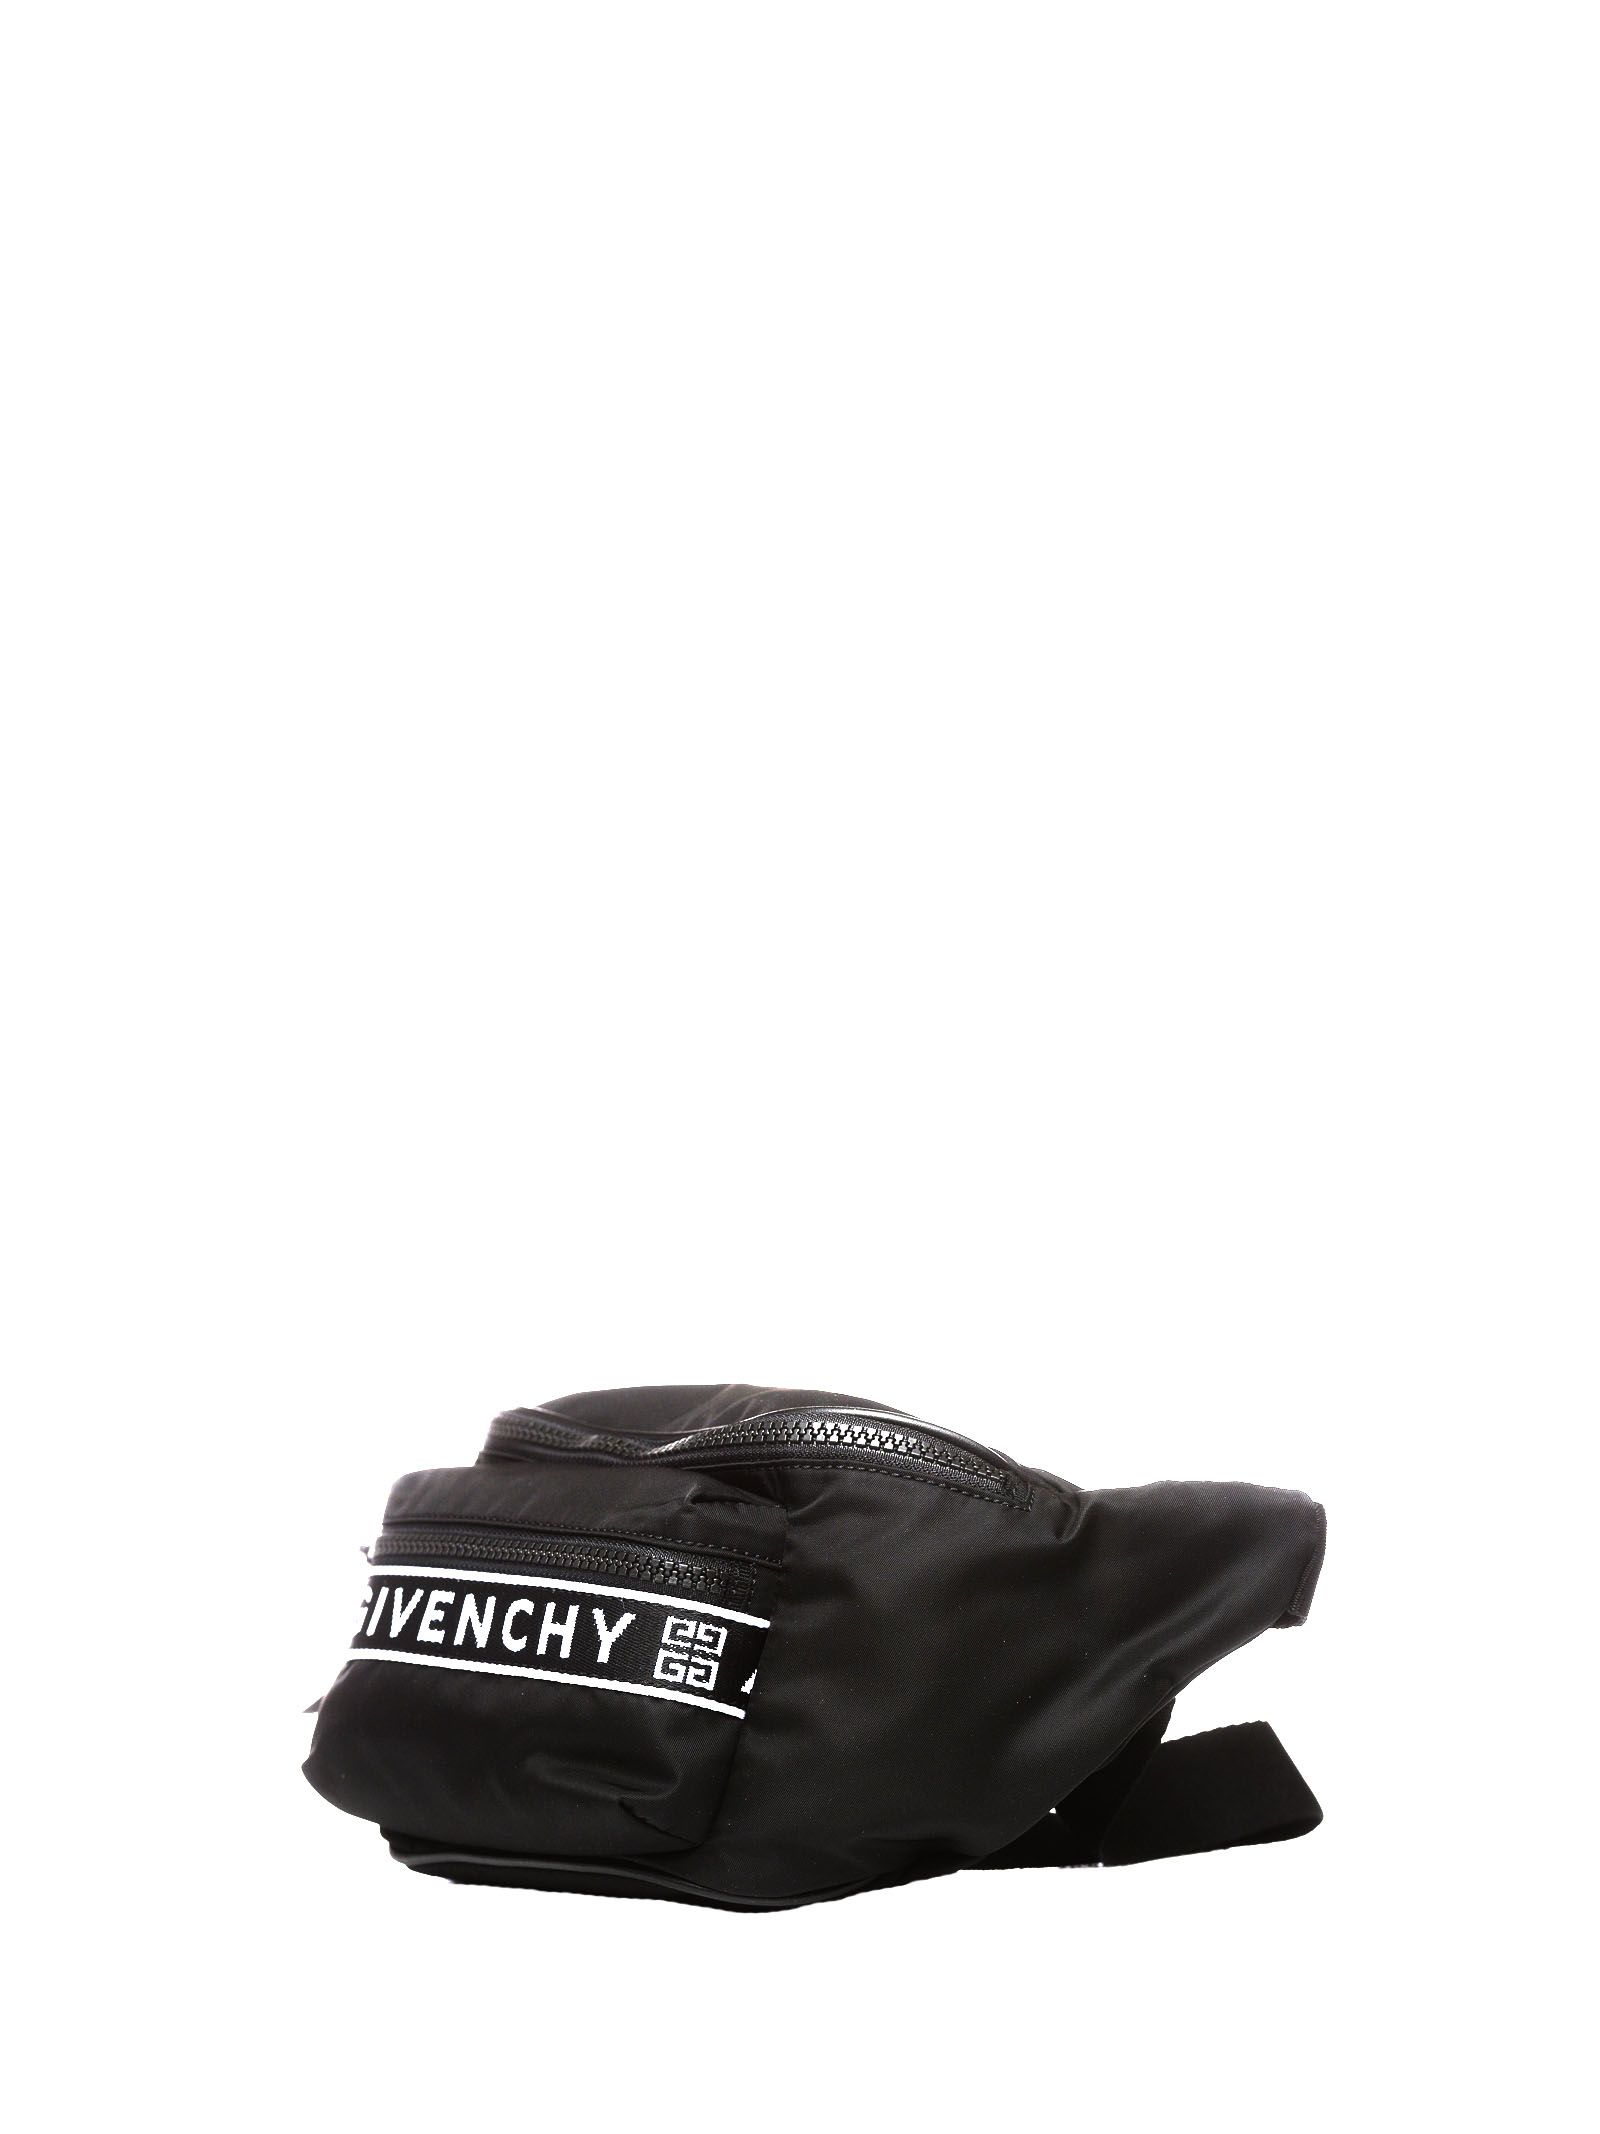 da450e94f8 Givenchy Givenchy Givenchy 4g Bum Bag - BLACK WHITE - 10851532